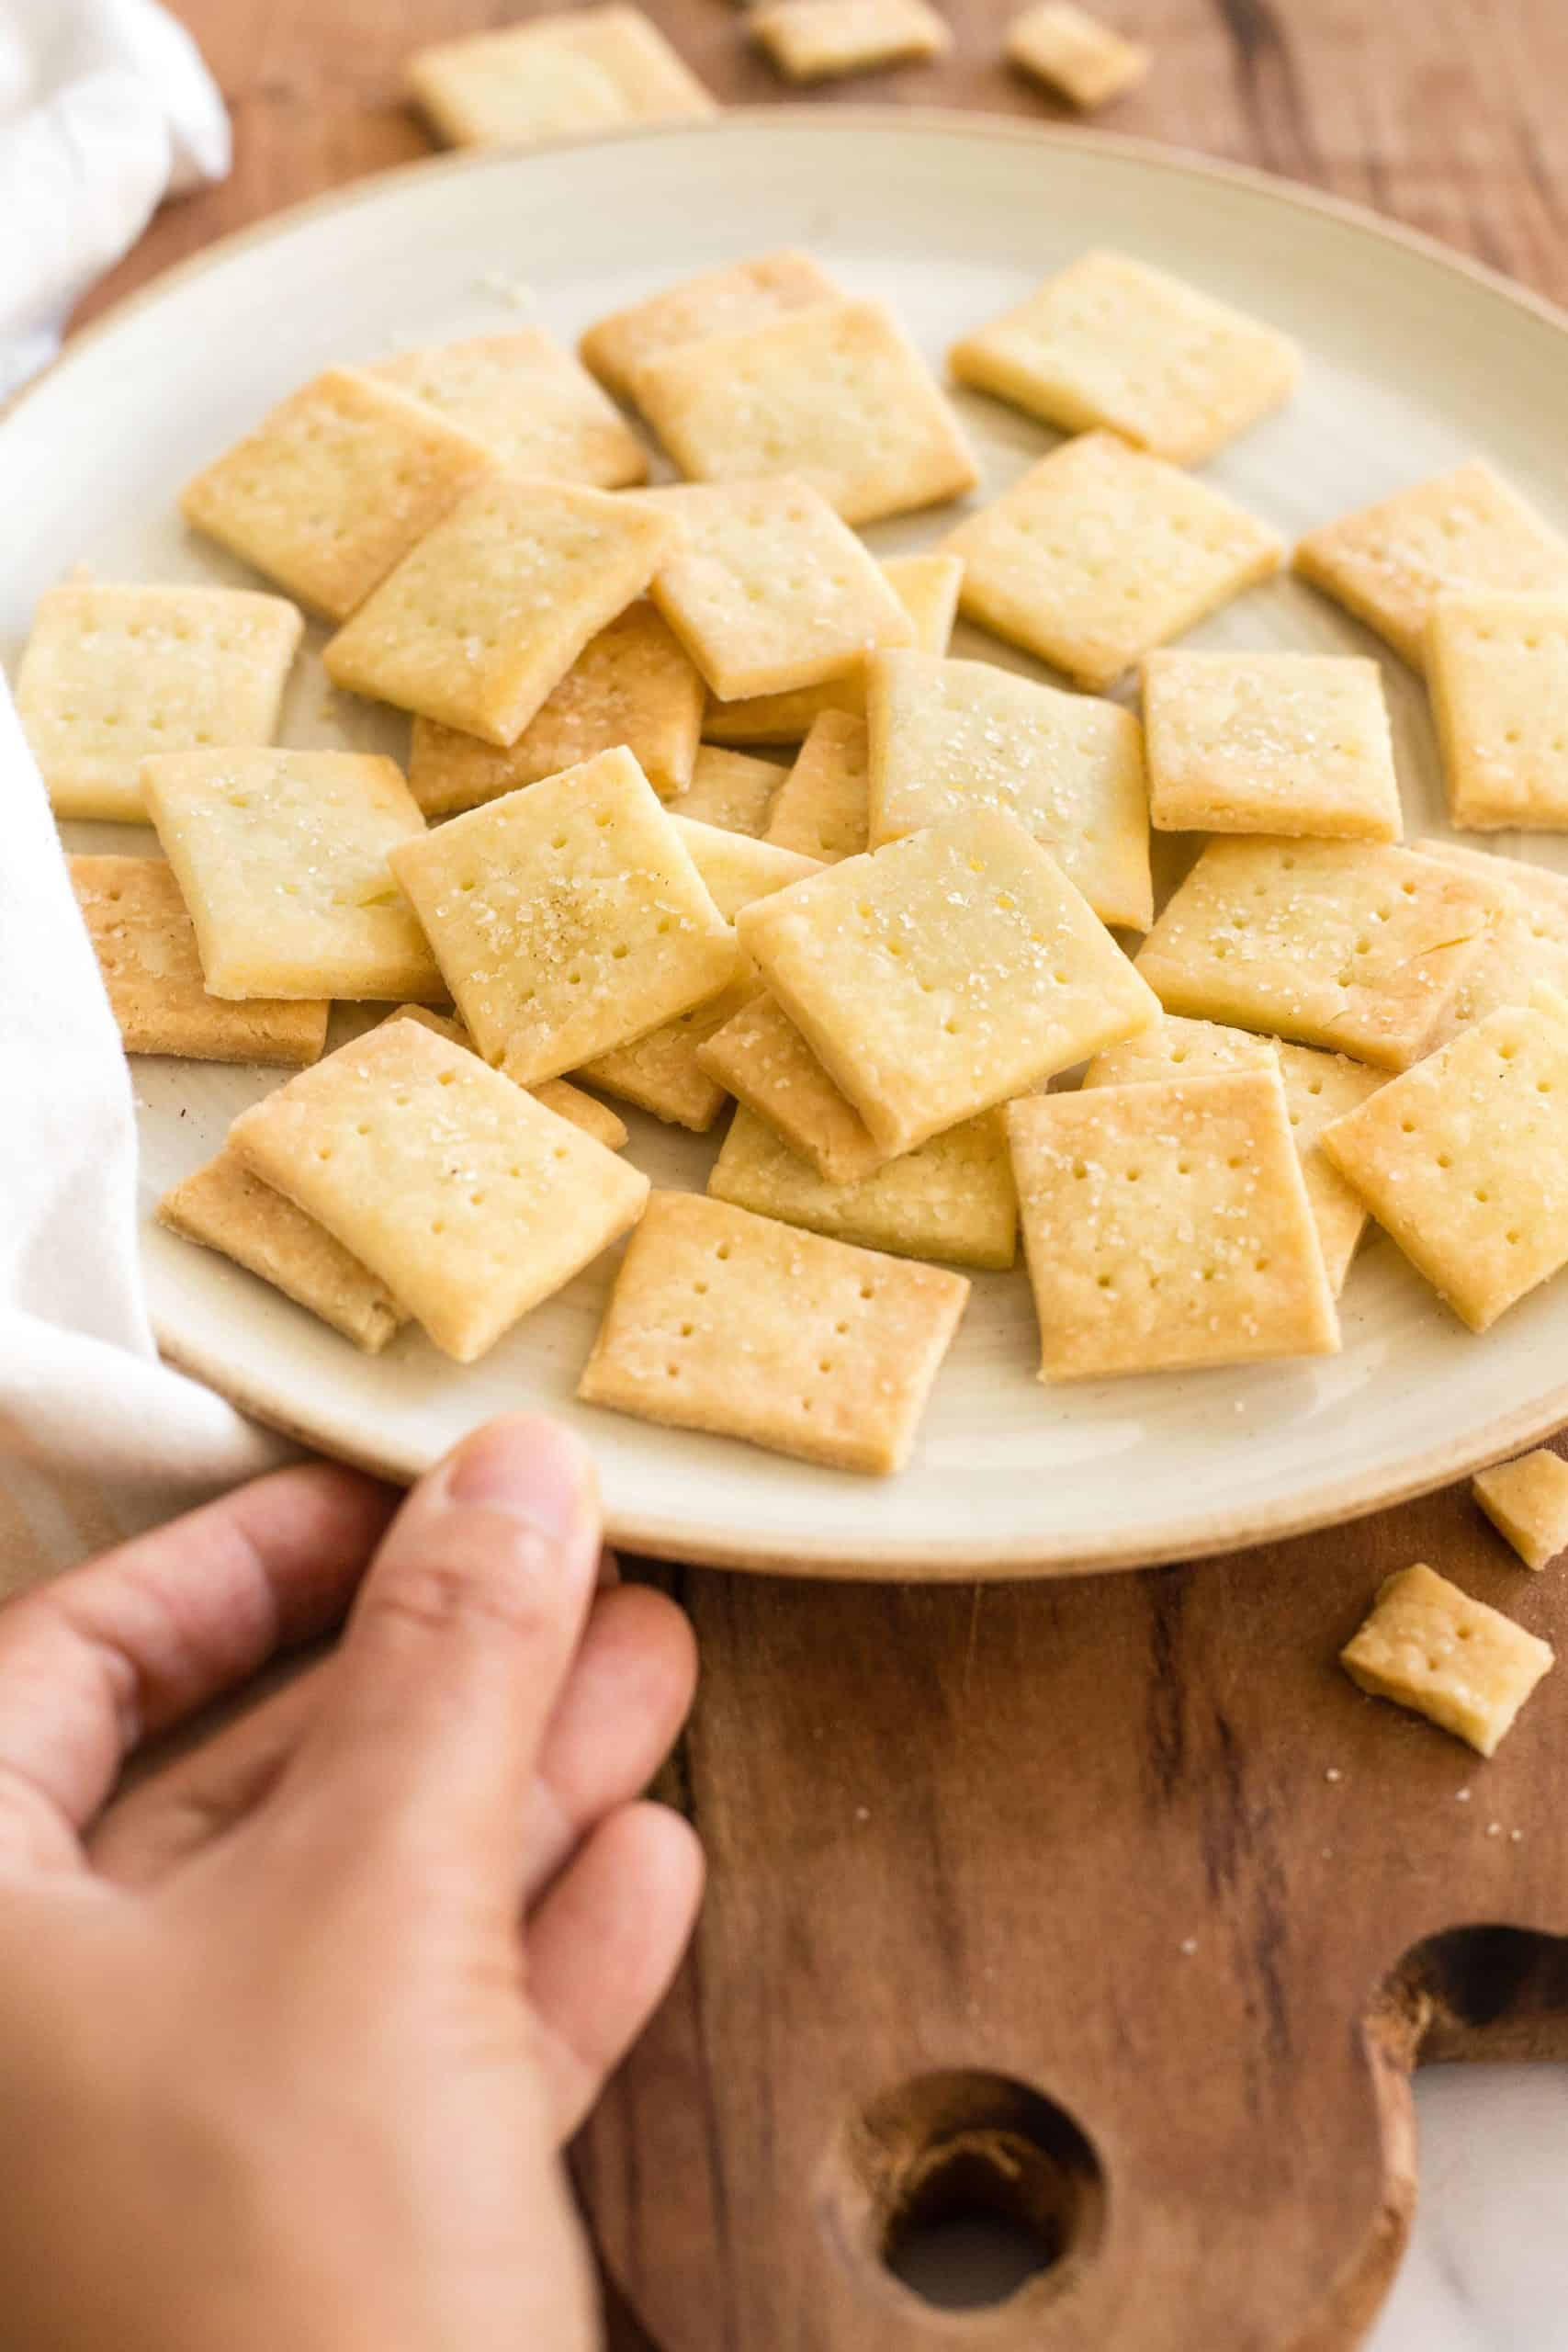 Hand reaching for a plate of crackers.